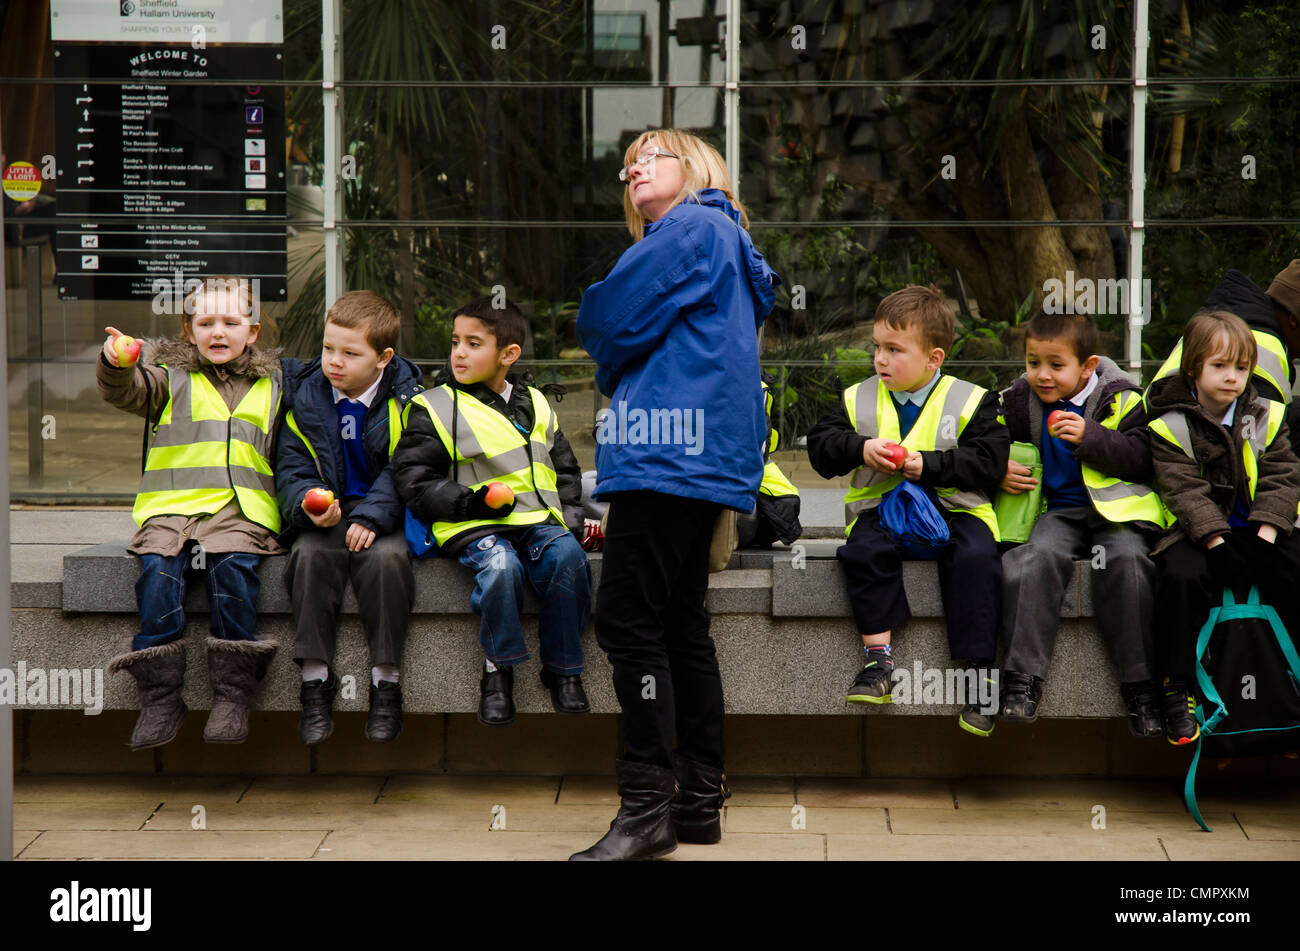 Class of young schoolchildren on excursion in Sheffield, UK. Note they're all eating apples, not junk food. - Stock Image